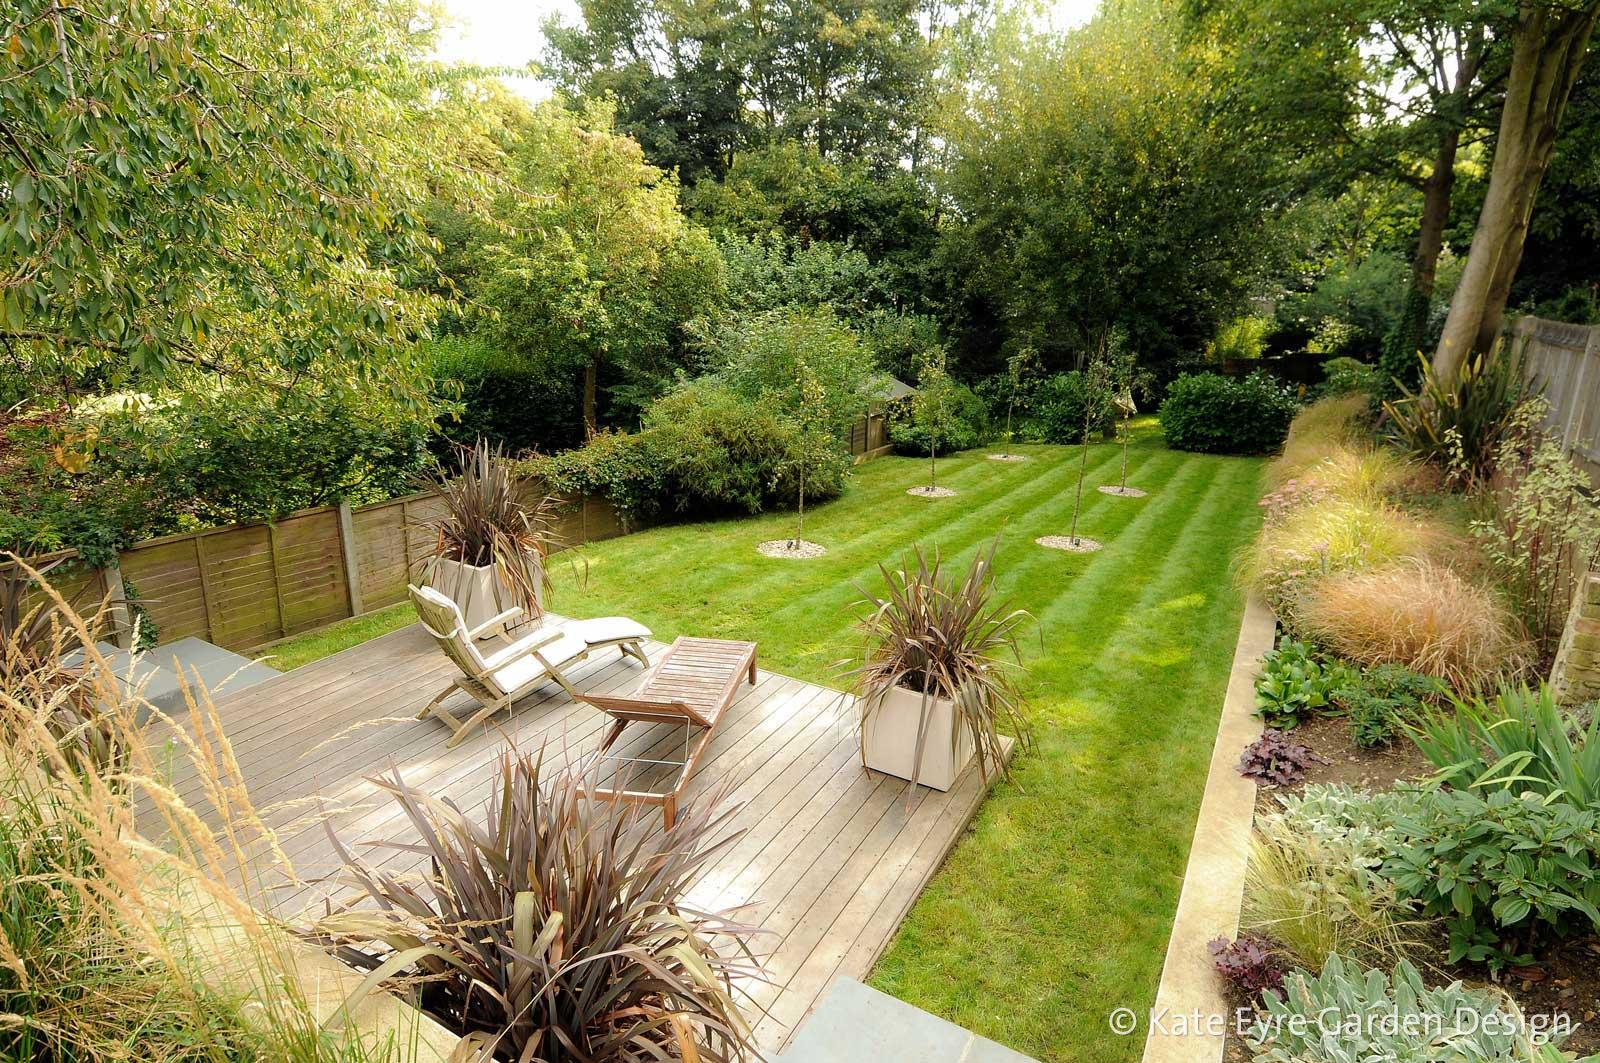 Garden Design In Crystal Palace South East London: backyard design pictures